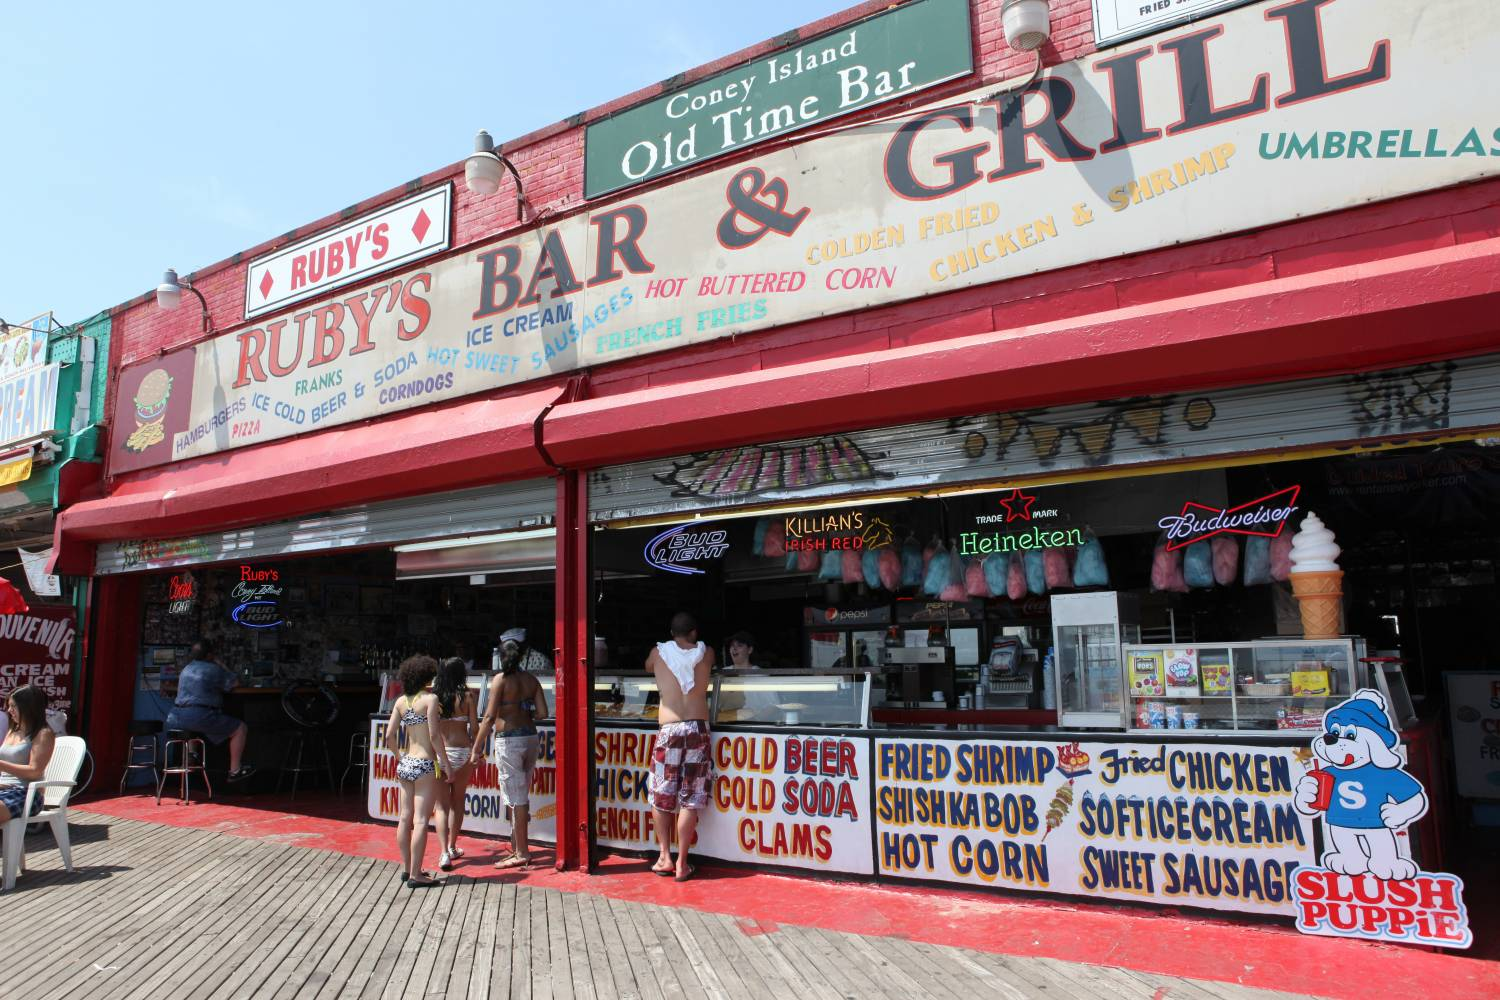 Ruby's Old Tyme Bar and Grill in Coney Island